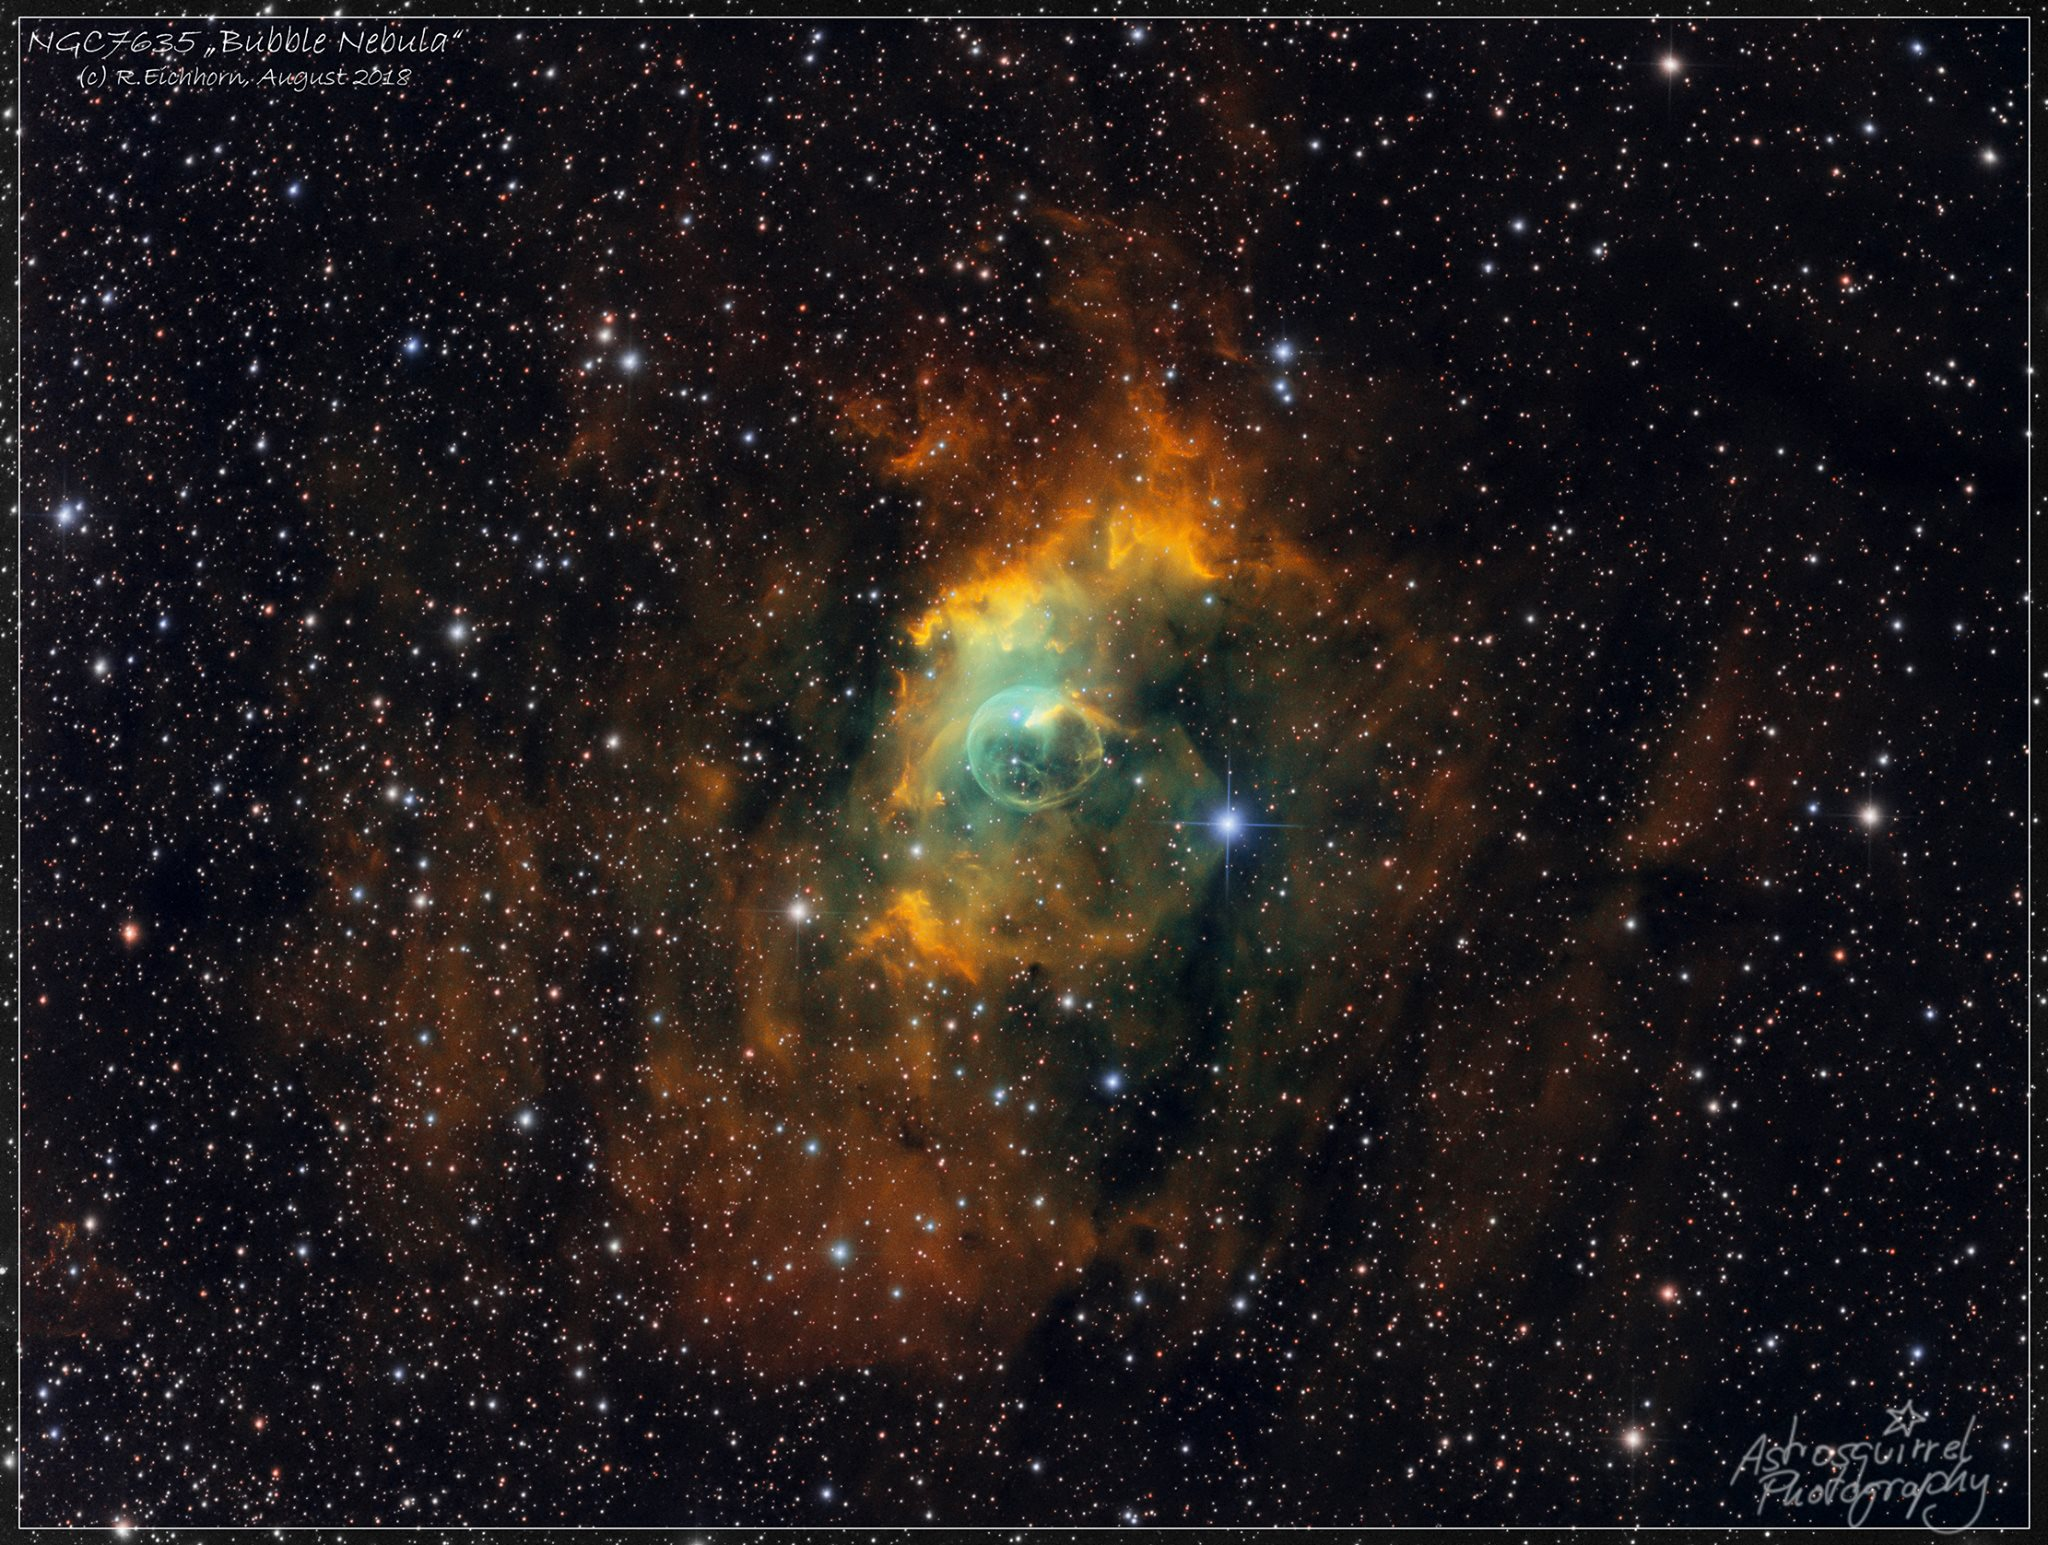 ‎Bubble Nebula by Rajko Eichhorn